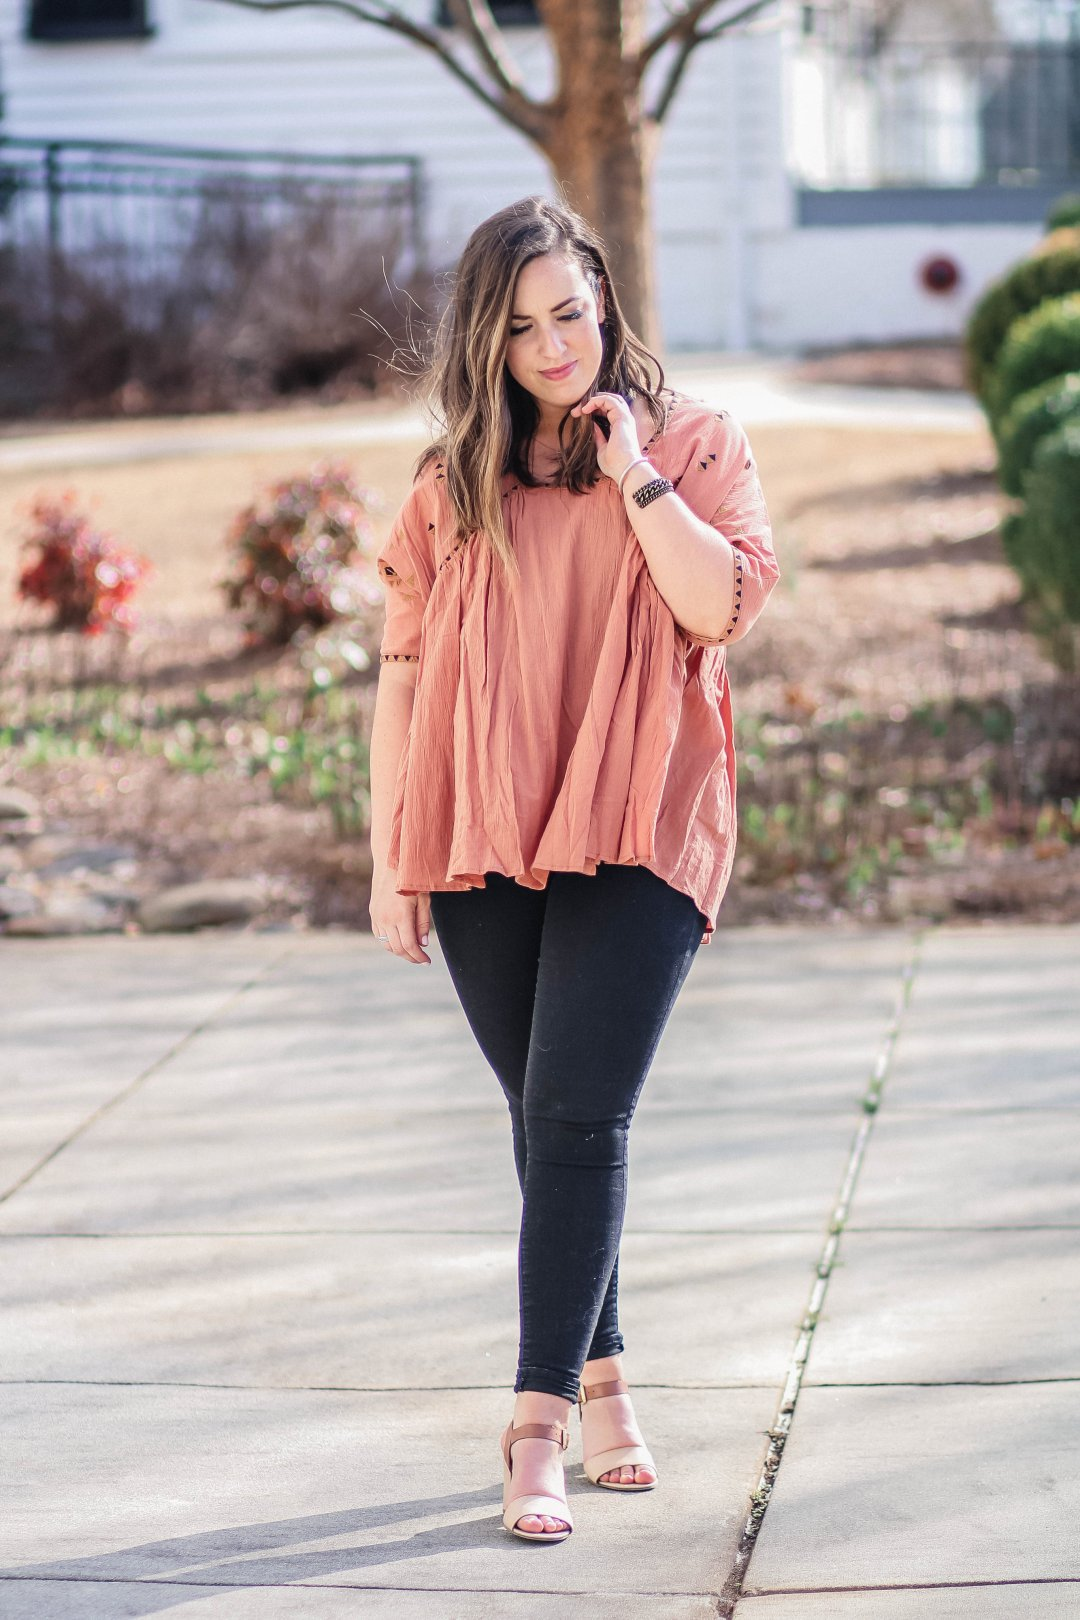 Flowy Bohemian Outfit | Just Peachy Blog